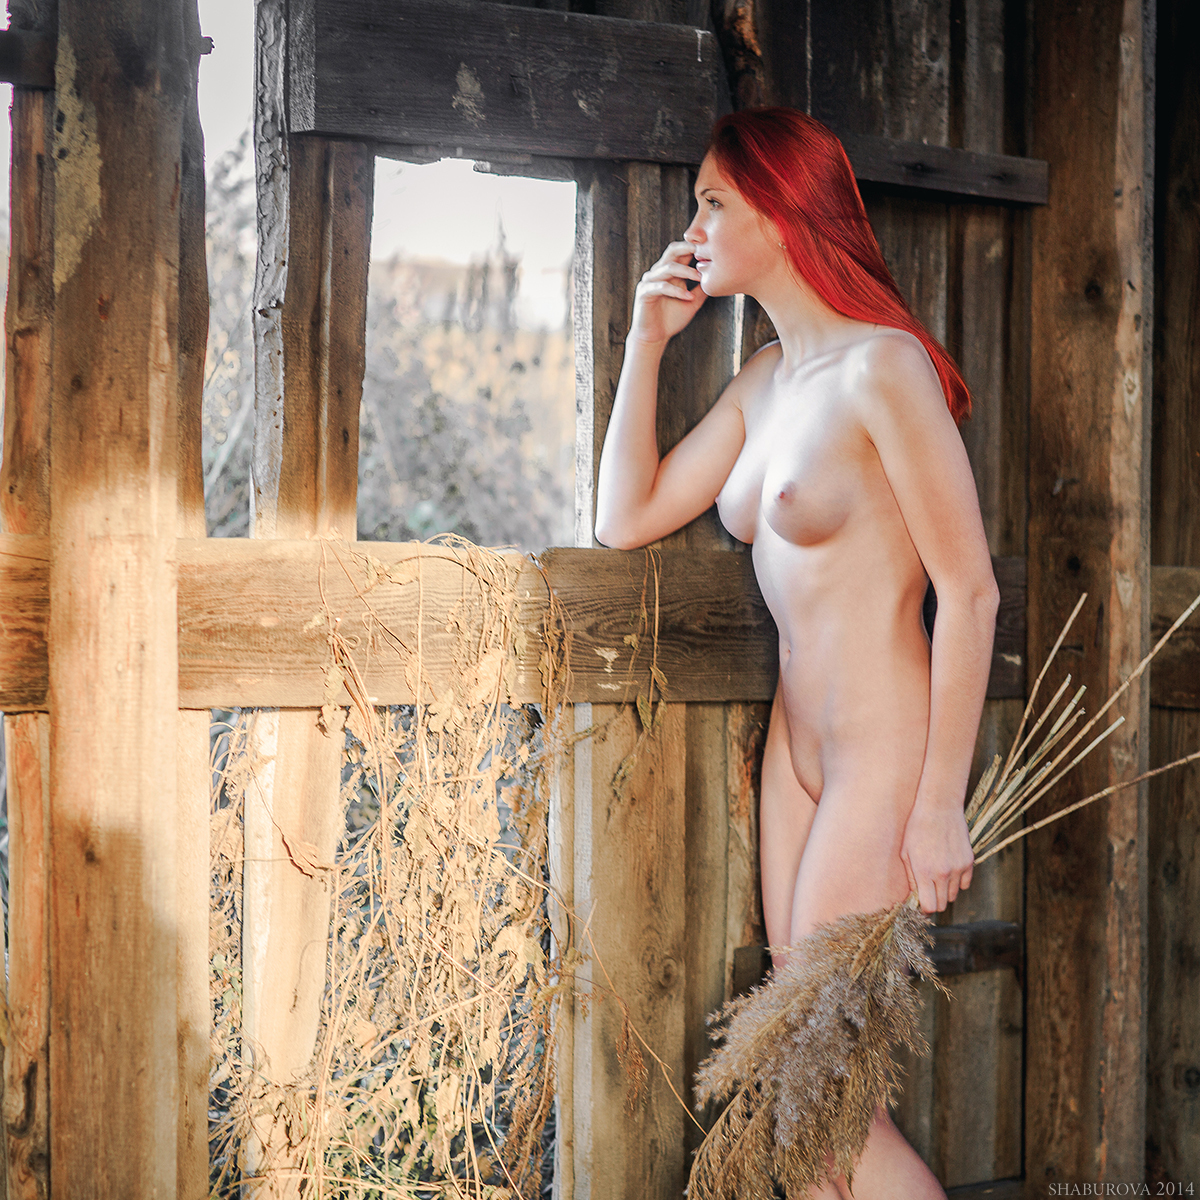 Hot redhead country girls naked